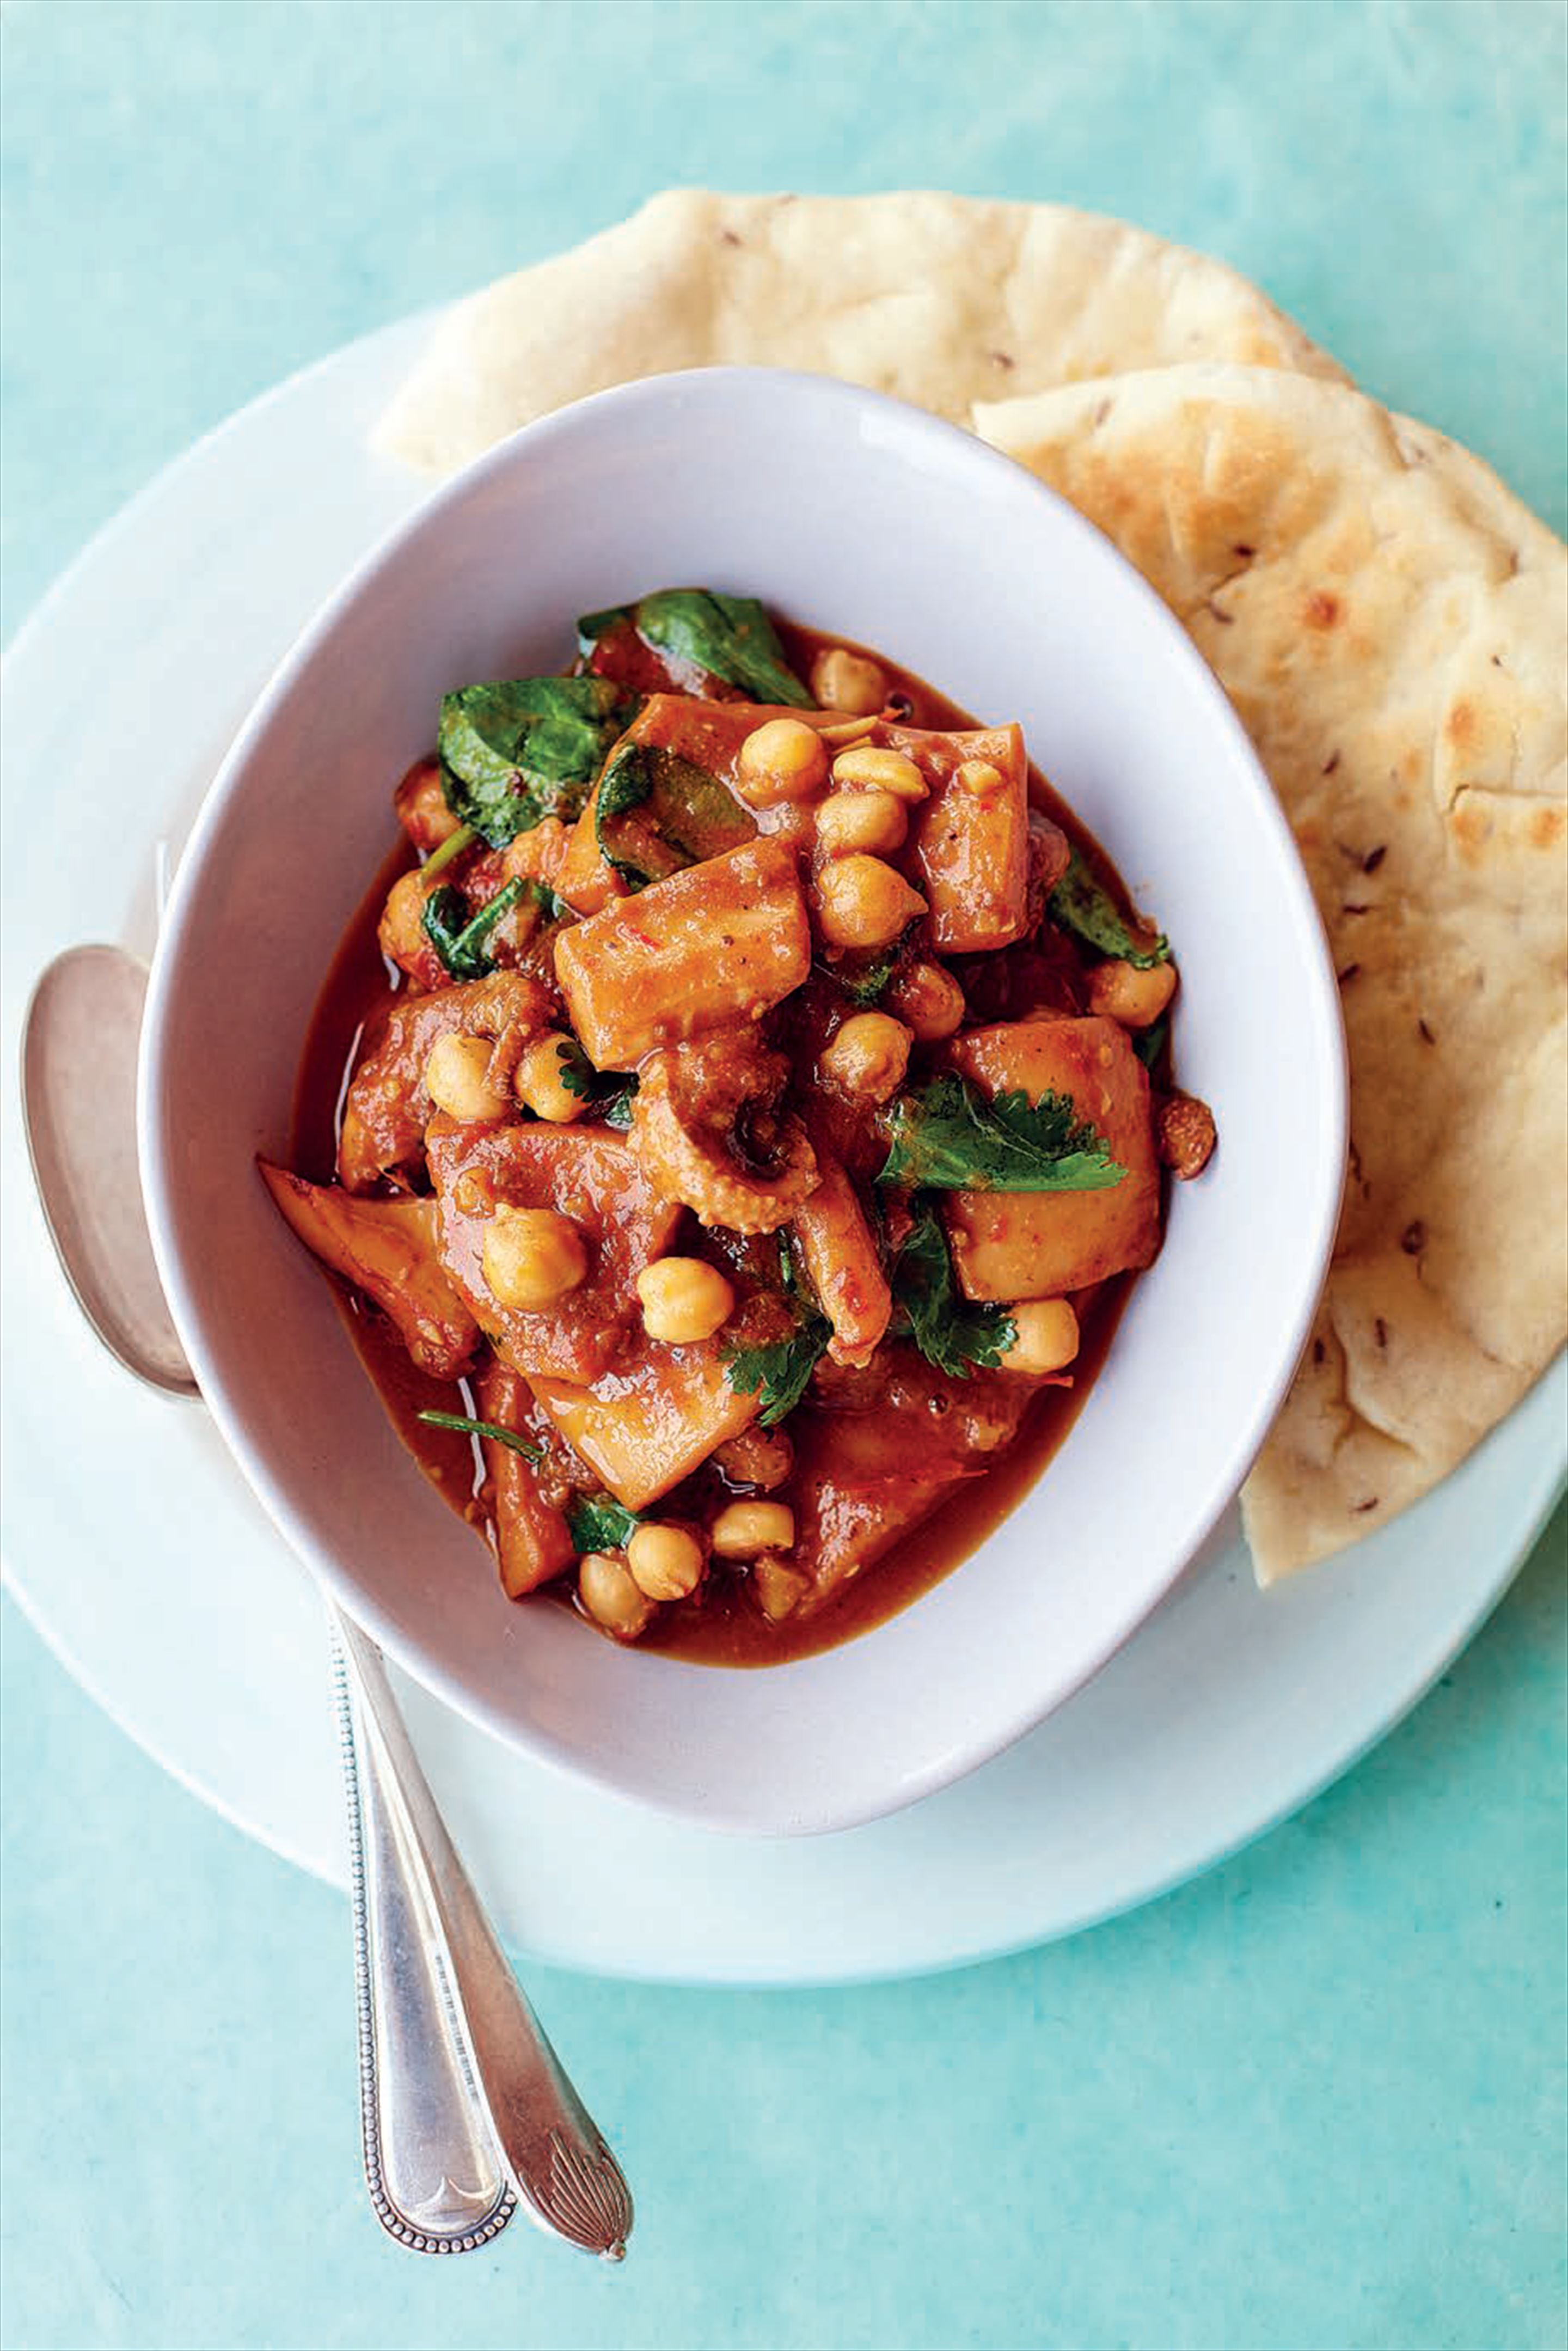 Cuttlefish curry with chickpeas and spinach